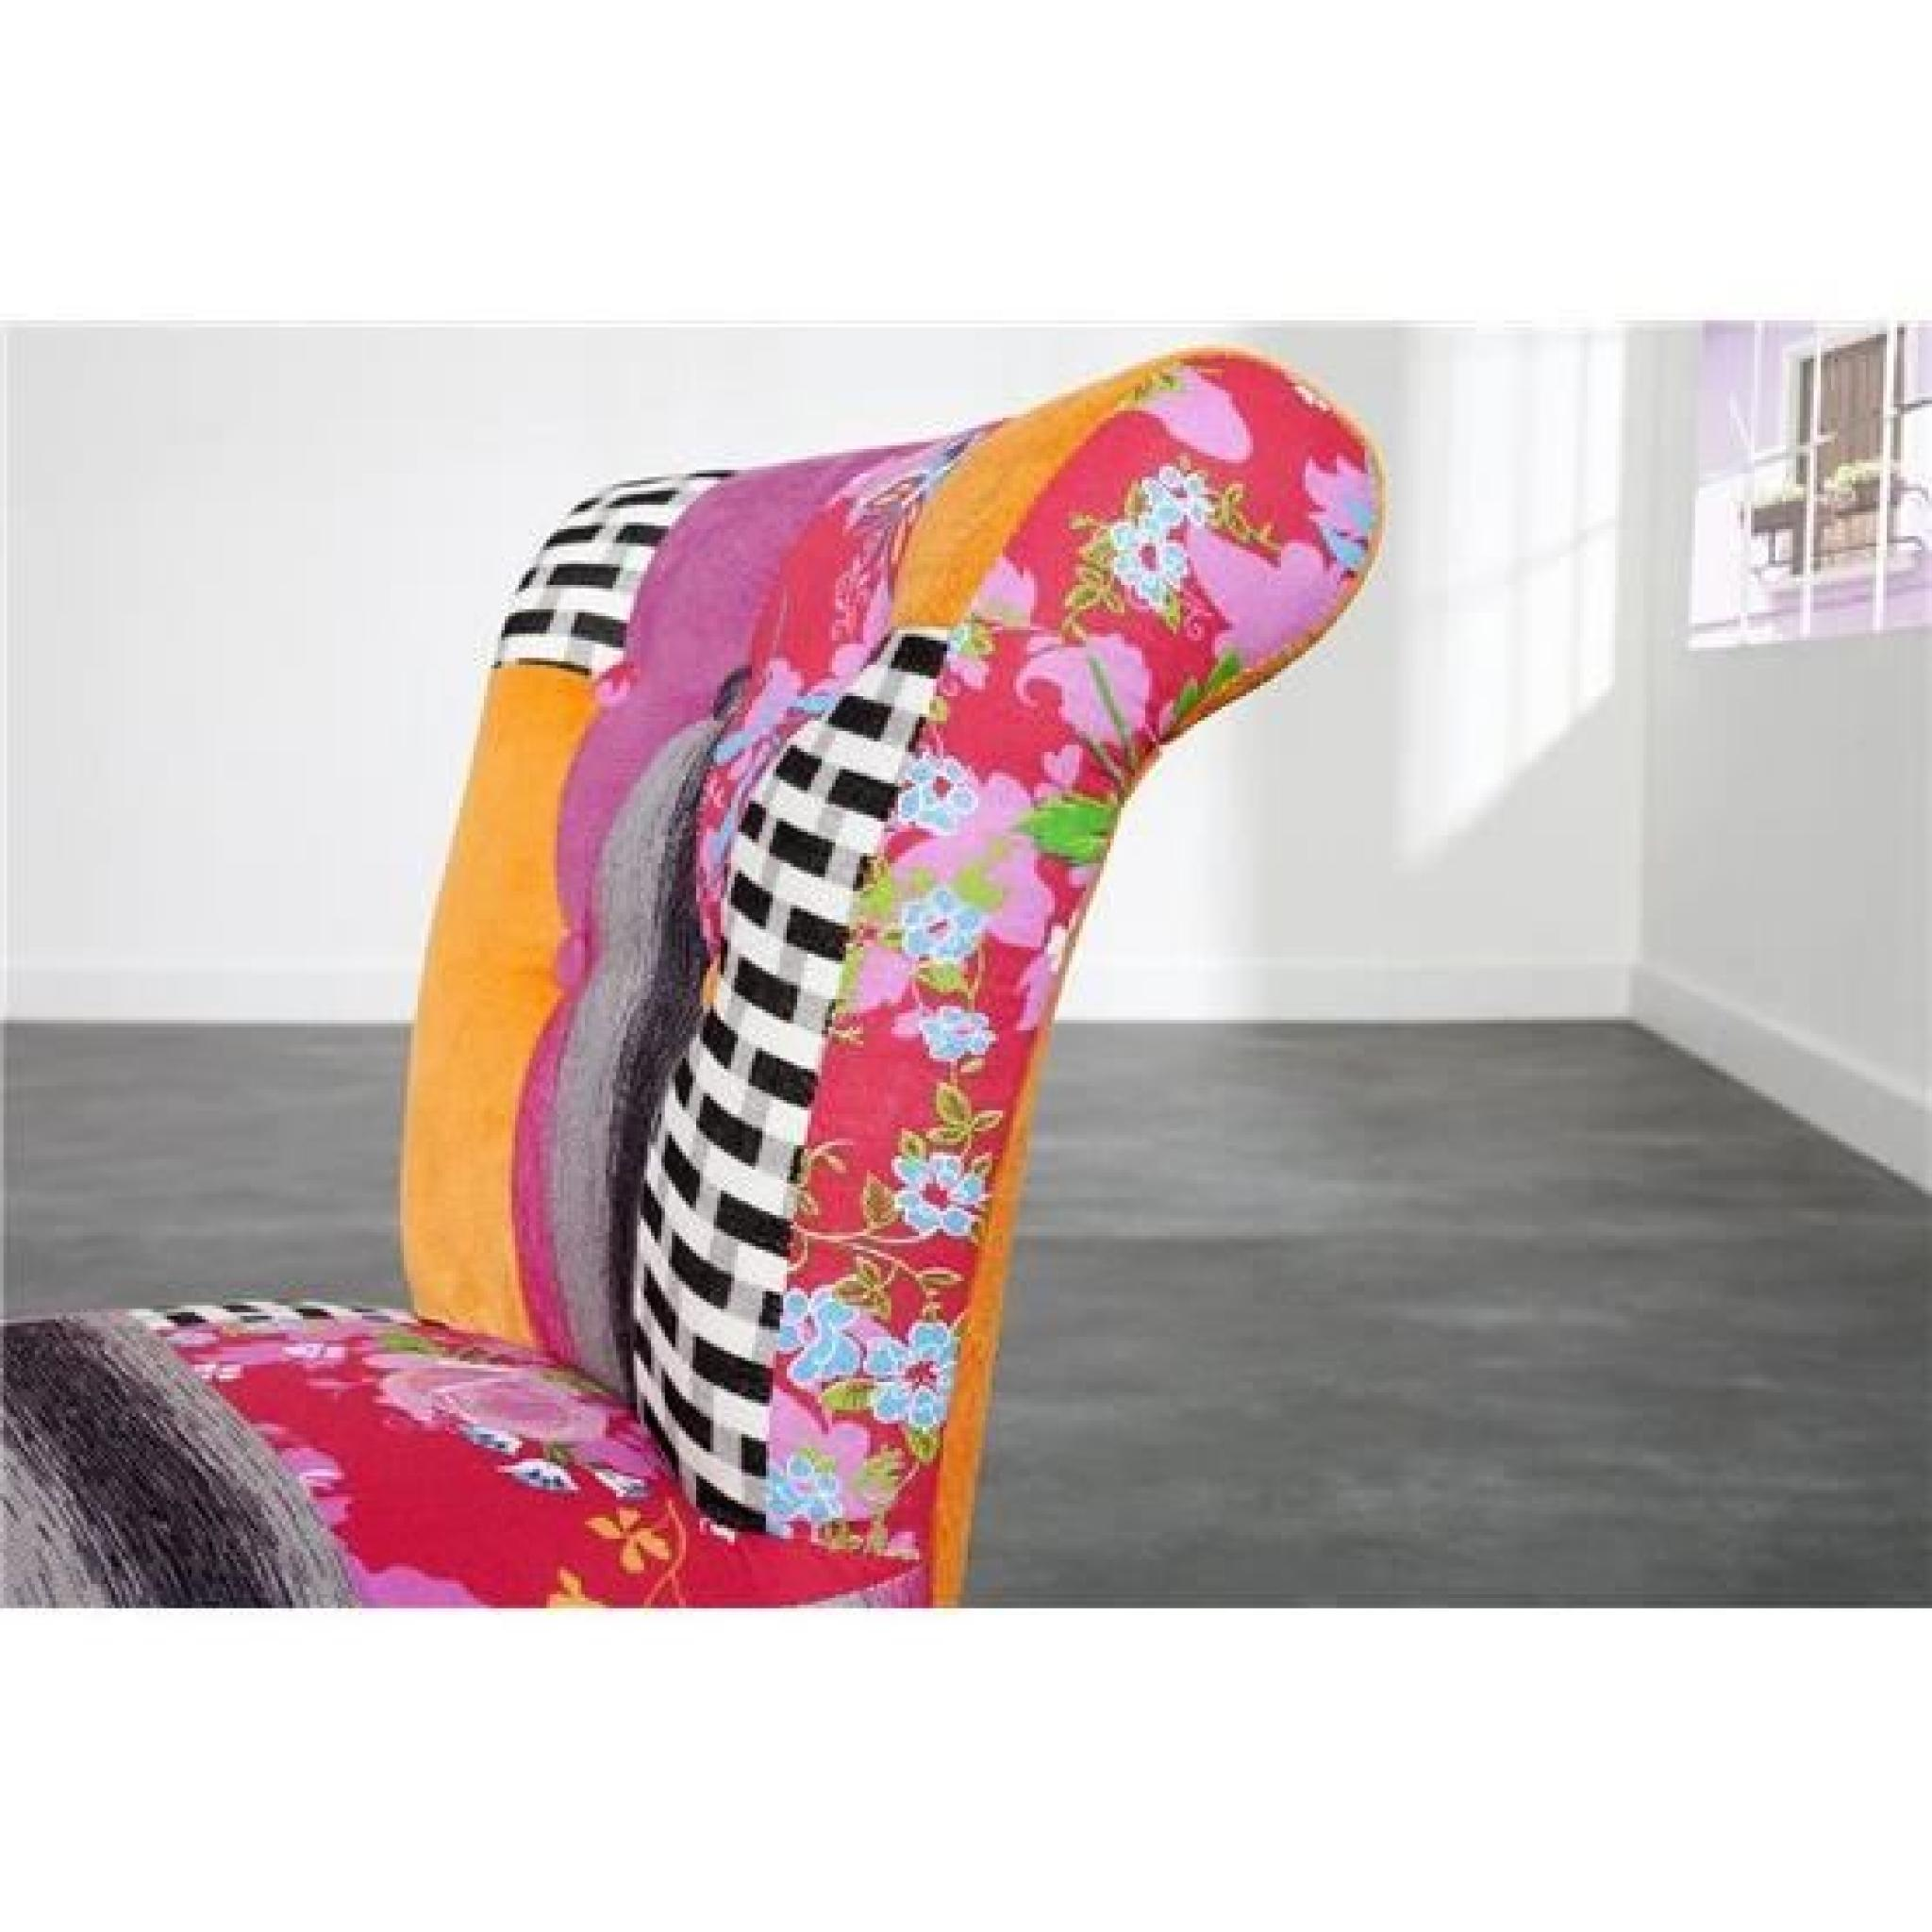 chaise colore bizans multicolore par 2 pas cher - Chaise Coloree